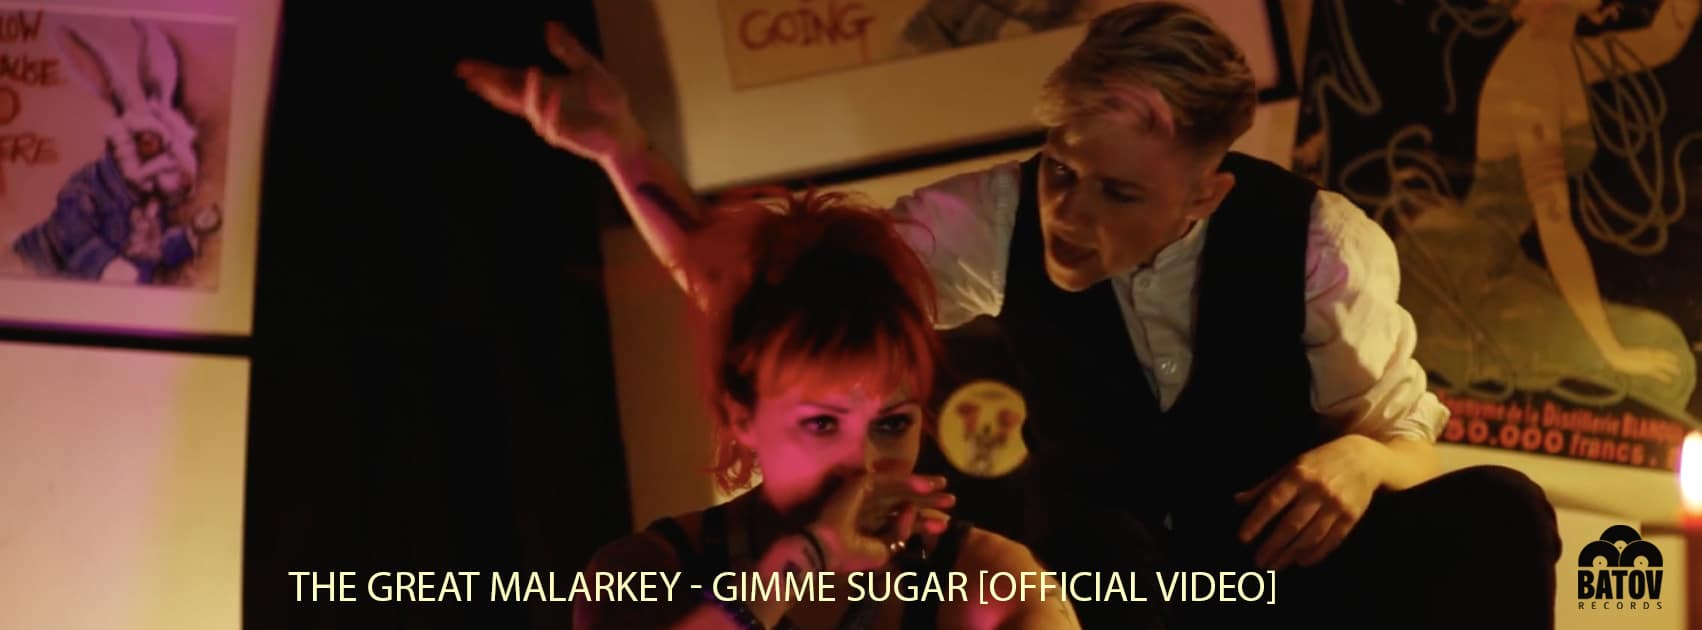 The Great Malarkey - Gimme Sugar